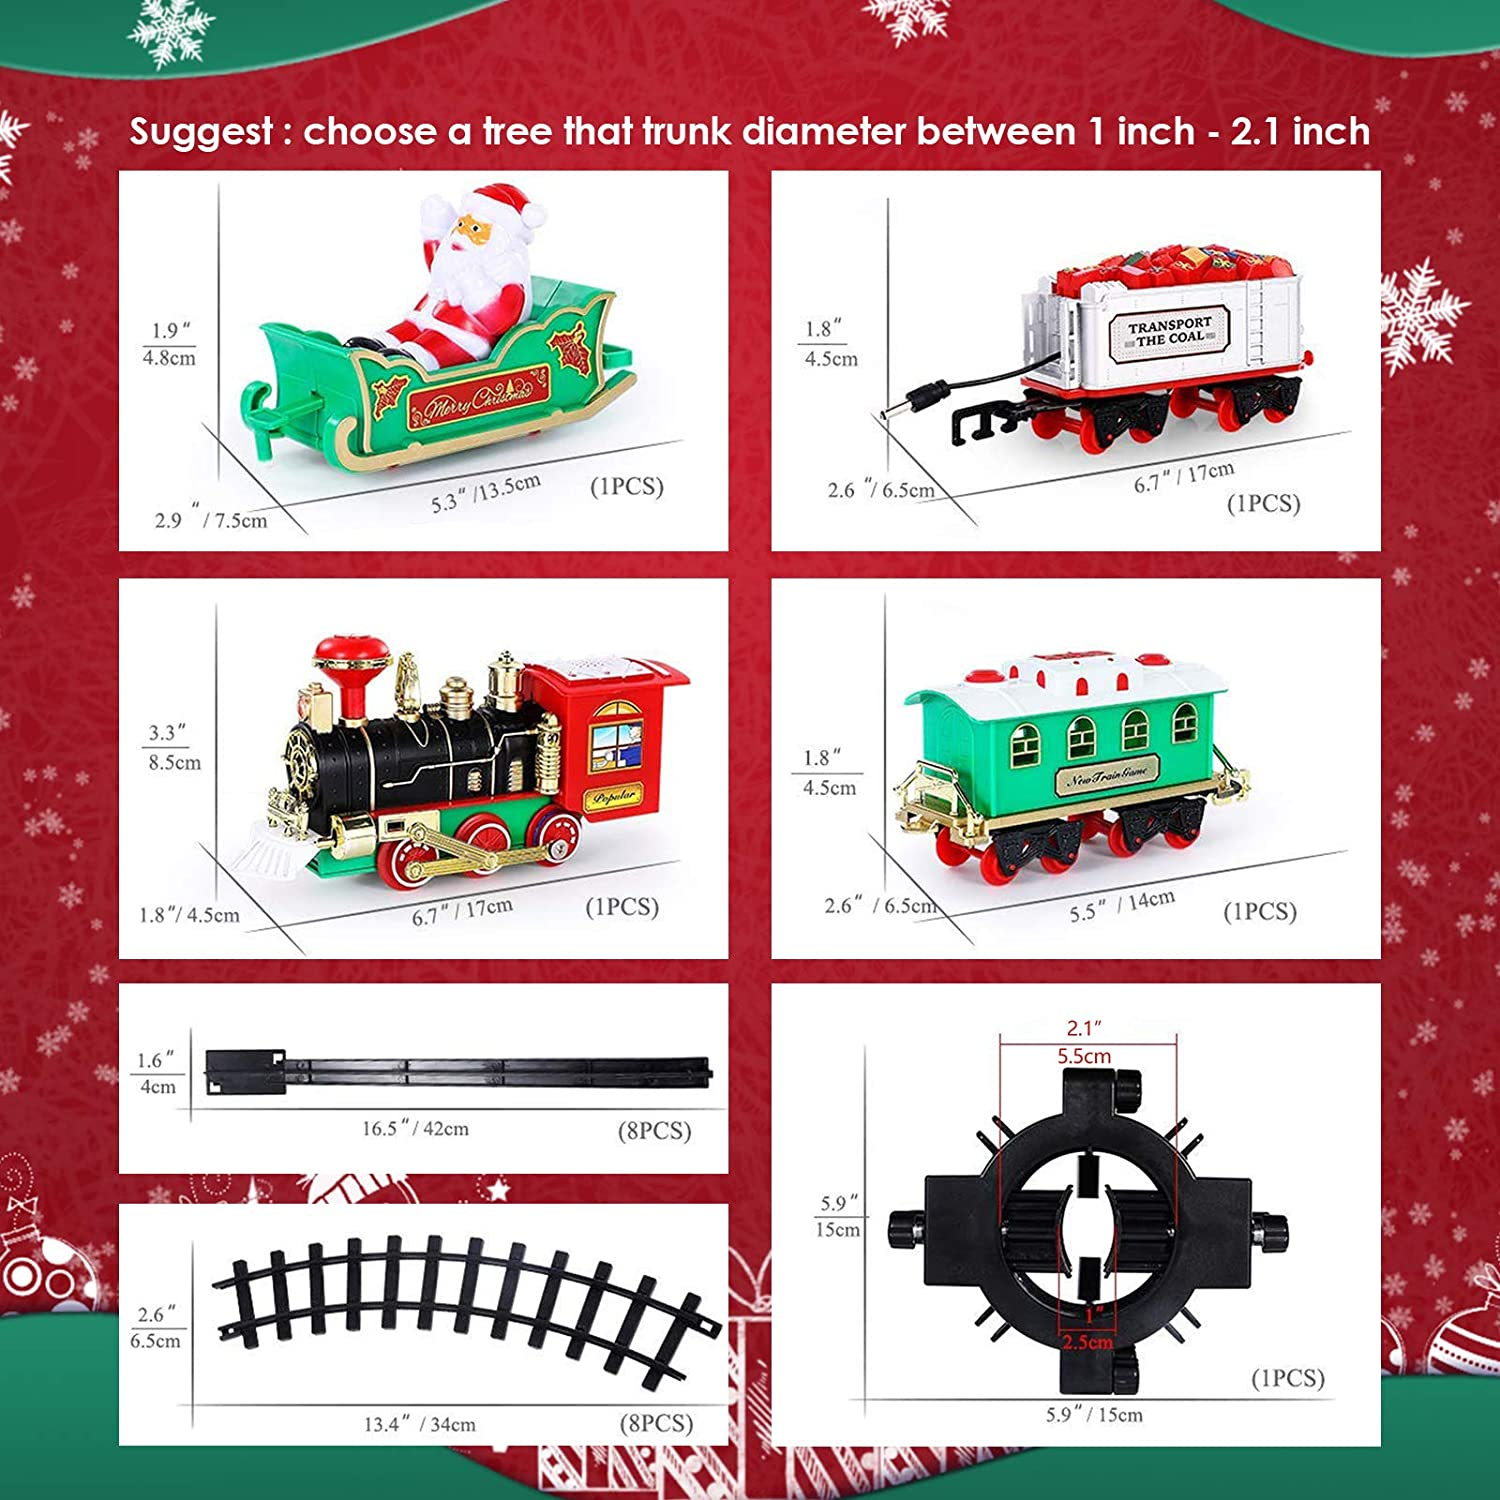 Boys /& Girls 30 Round Railway Tracks for Under//Around The Christmas Tree Battery Operated Toys Xmas Train Gift for Kids 2020 Updated Christmas Train Set AOKESI Toy Train Set with Lights /& Sounds